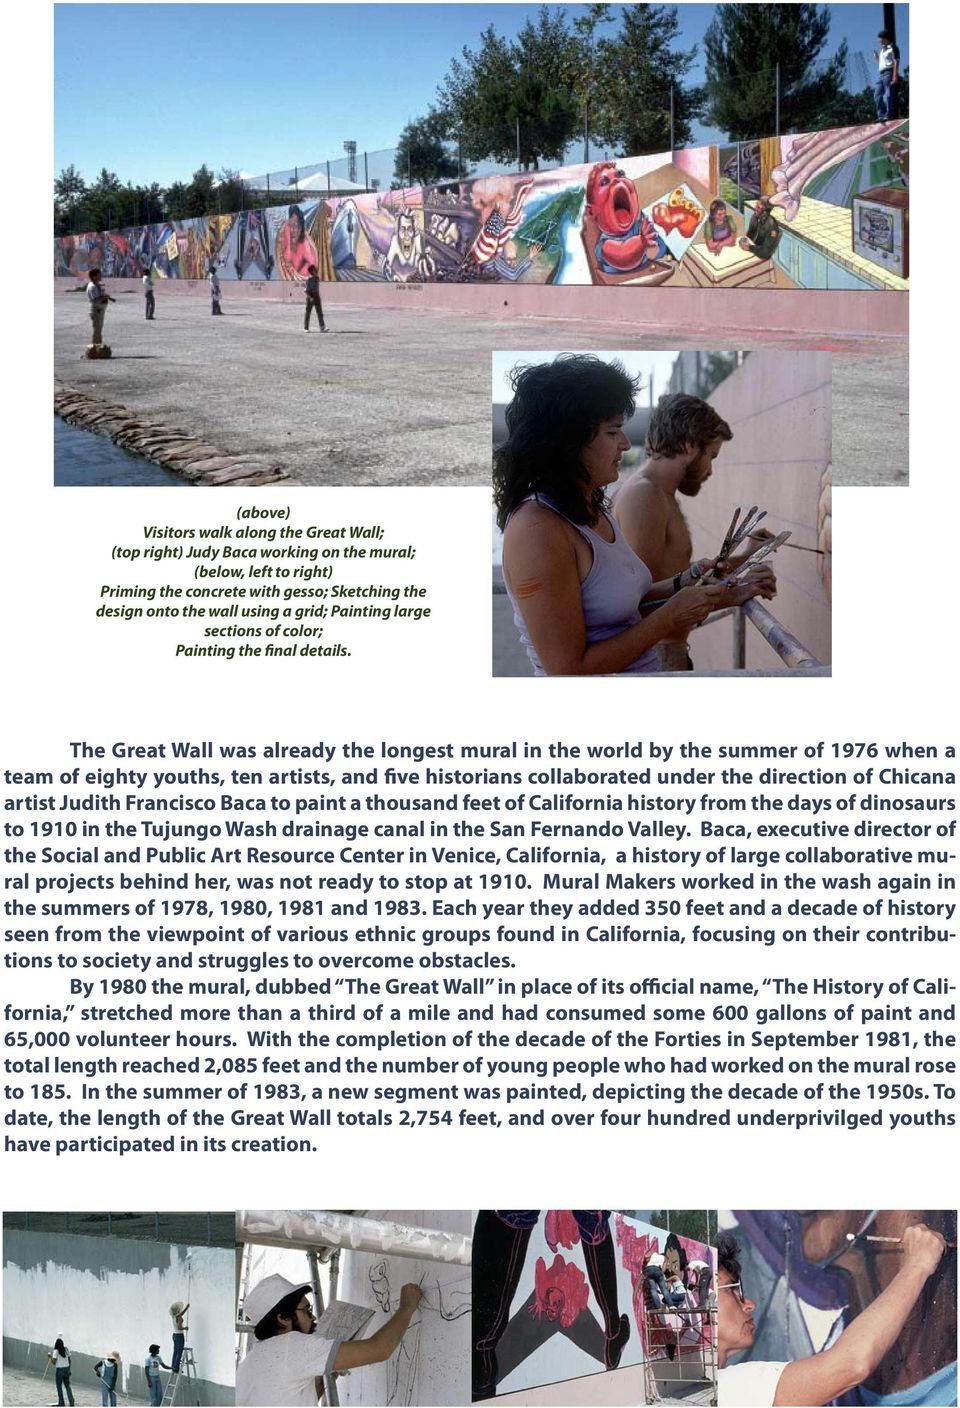 The Great Wall was already the longest mural in the world by the summer of 1976 when a team of eighty youths, ten artists, and five historians collaborated under the direction of Chicana artist